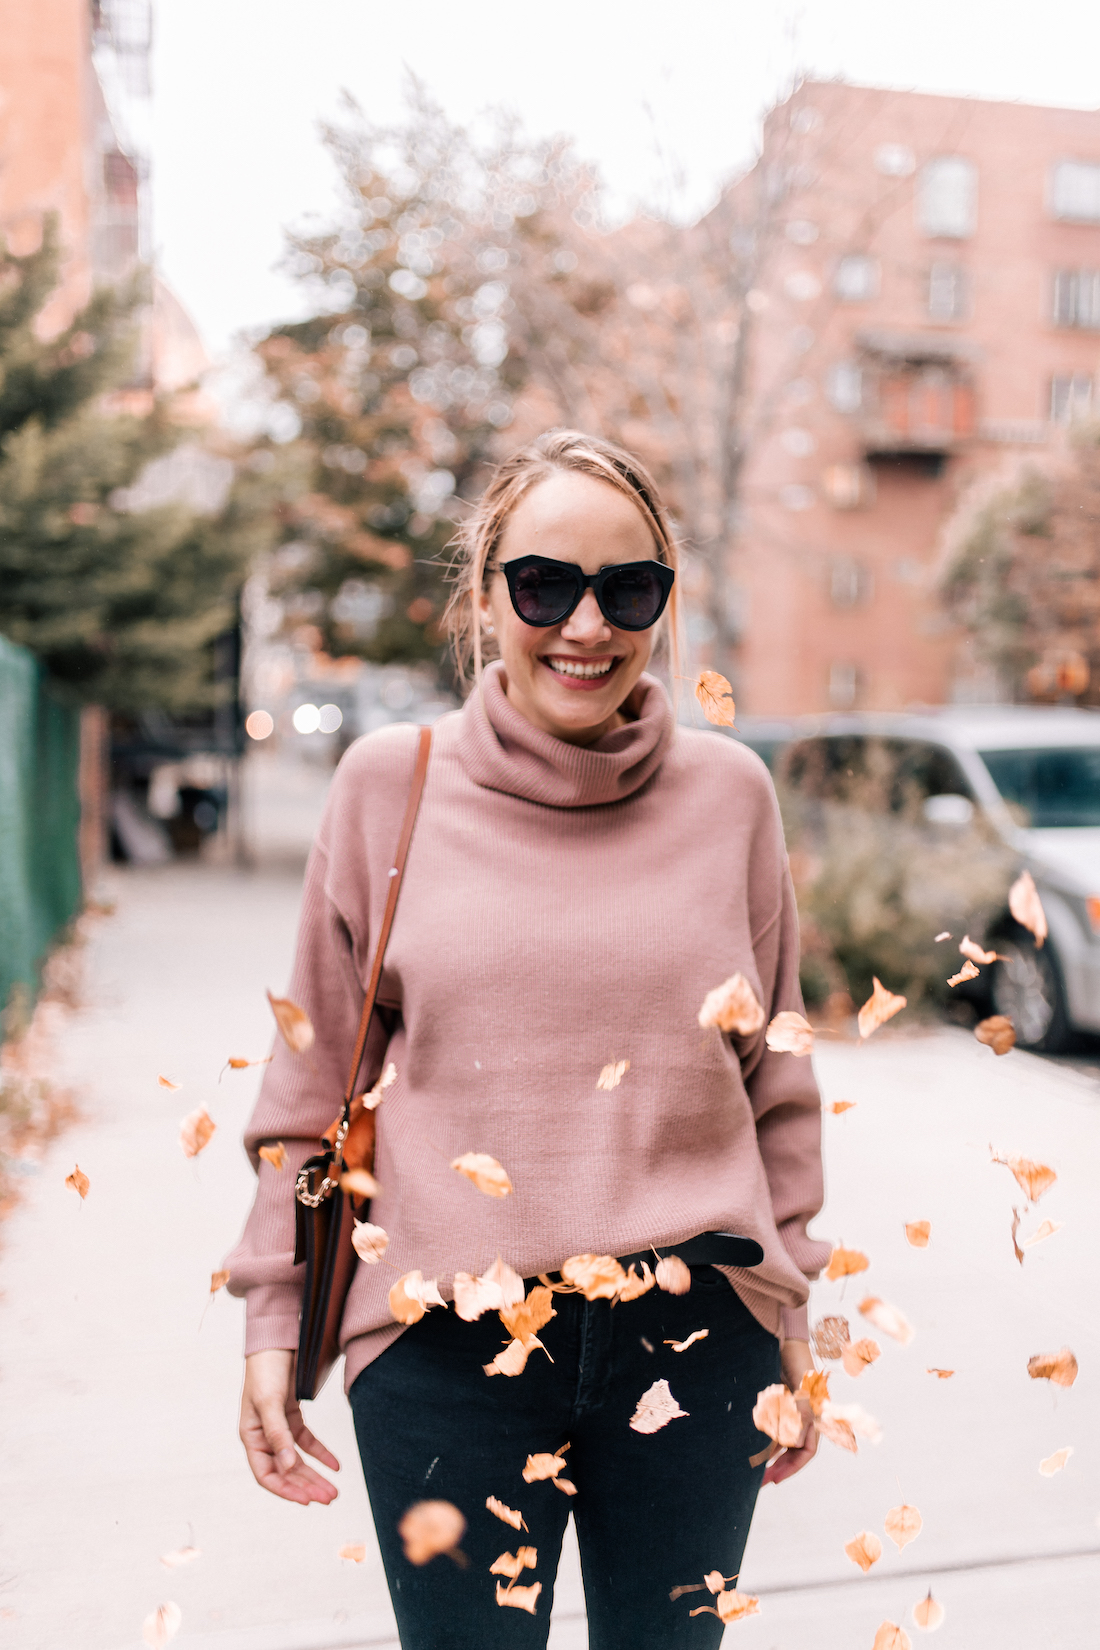 Free People Softly Structured Tunic Sweater //American Eagle Jeans // Karen Walker Sunglasses //Charlotte Tilbury Lipstick